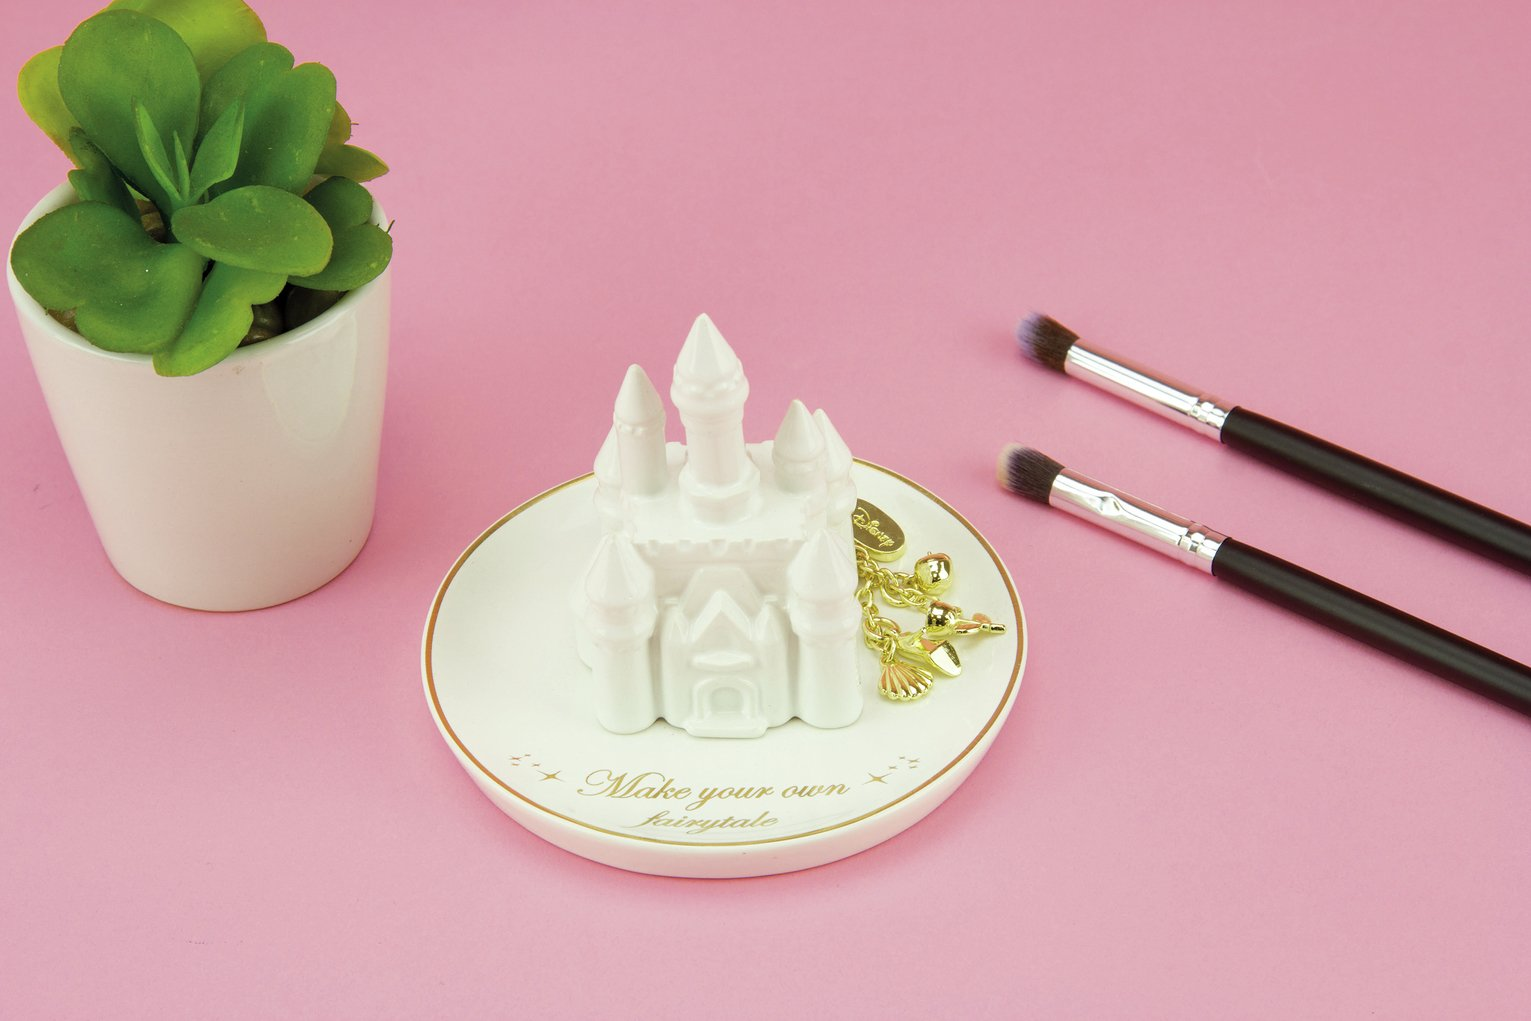 Disney Princess Castle Ceramic Trinket Dish